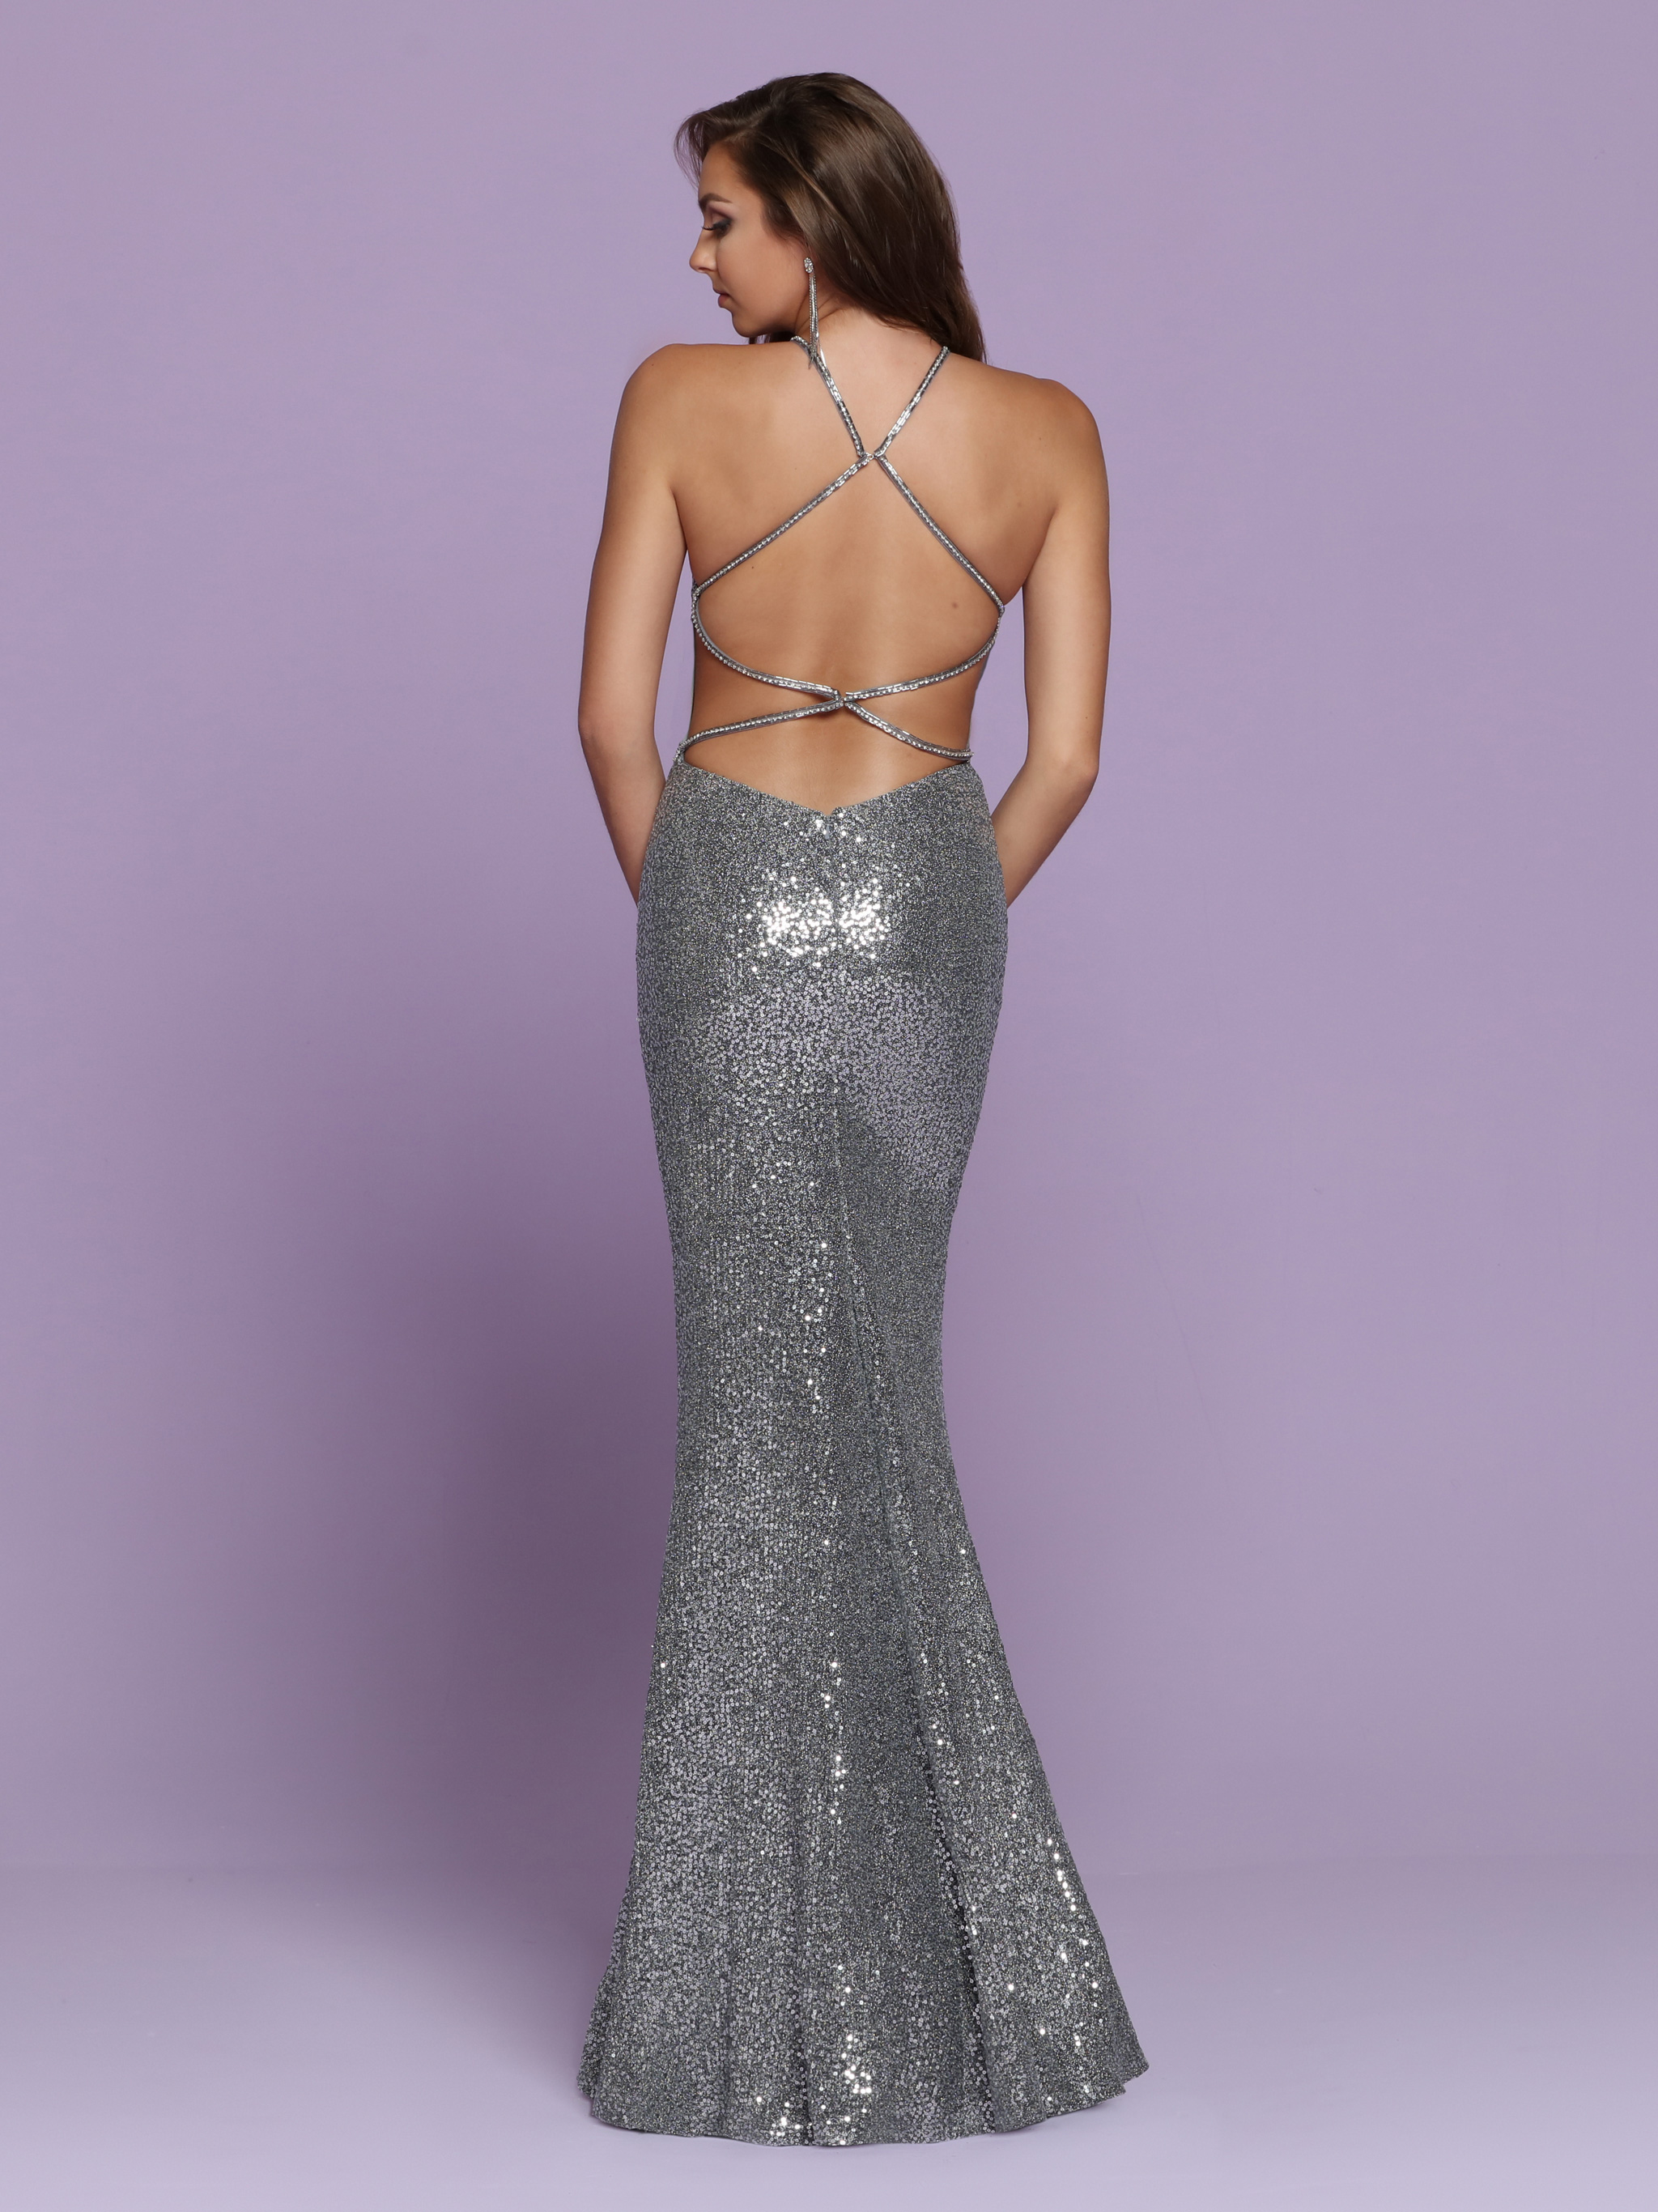 Image showing back view of style #72048